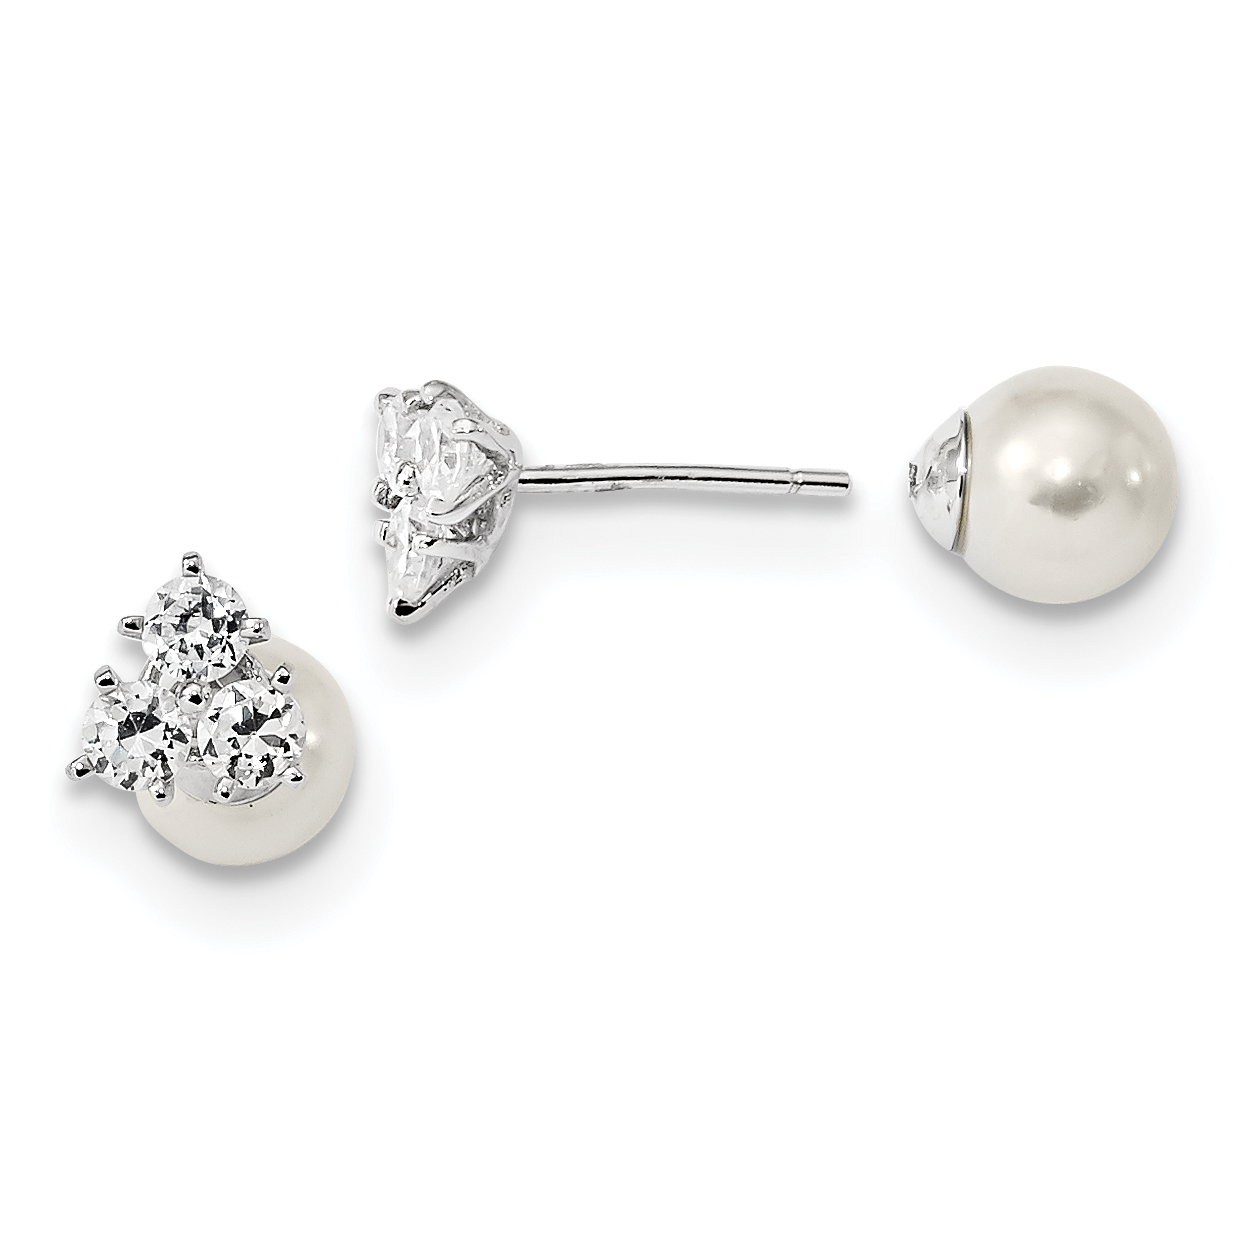 925 Sterling Silver Rh Pl Cubic Zirconia Cz Simulated Sea Shell Mermaid Nautical Jewelry Pearl Front Back Post Stud Earrings Ball Button Fine Jewelry Gifts For Women For Her - image 4 of 4